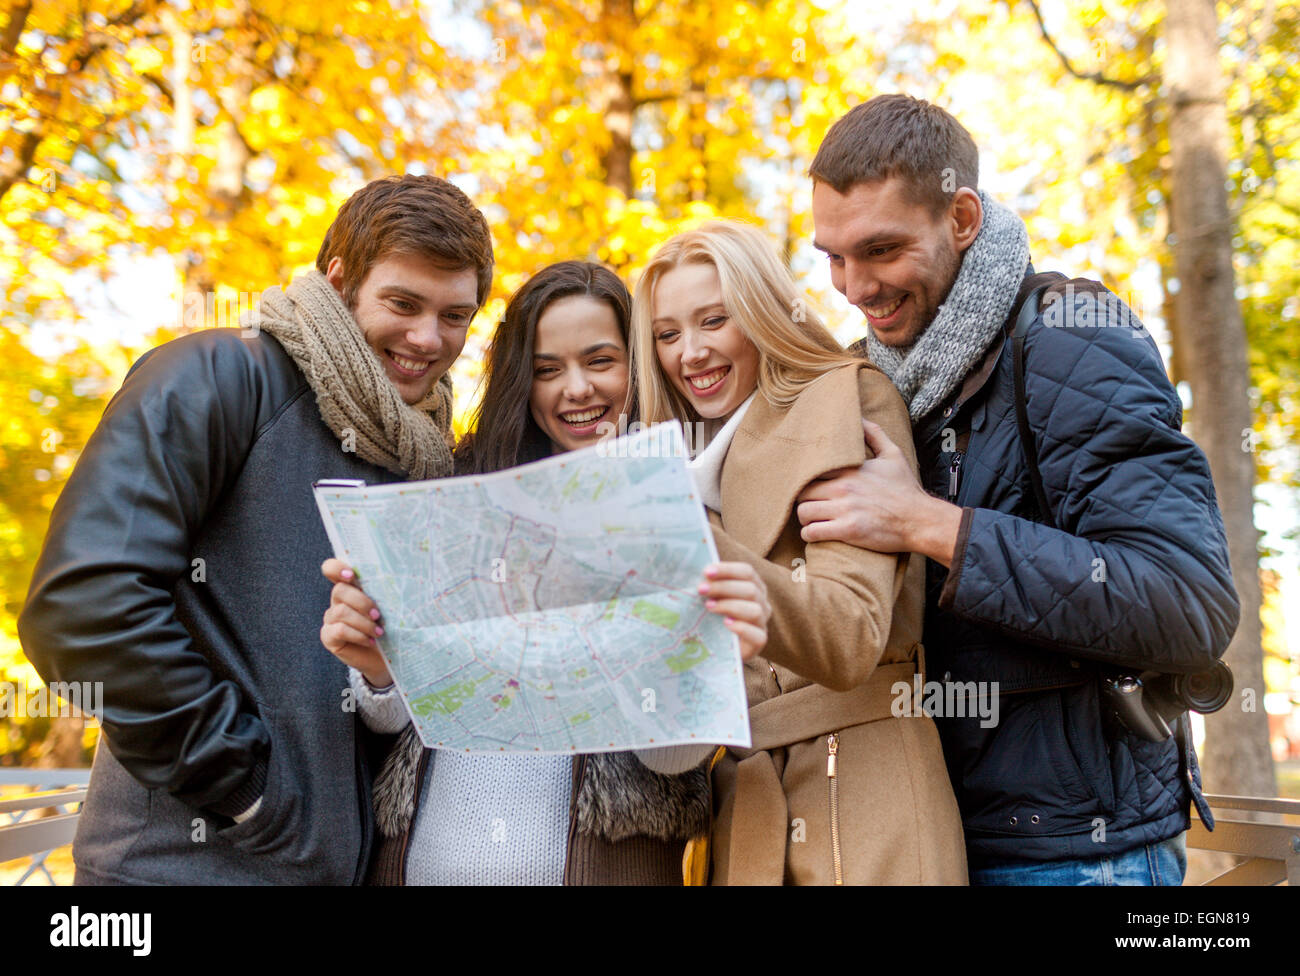 group of friends with map outdoors - Stock Image